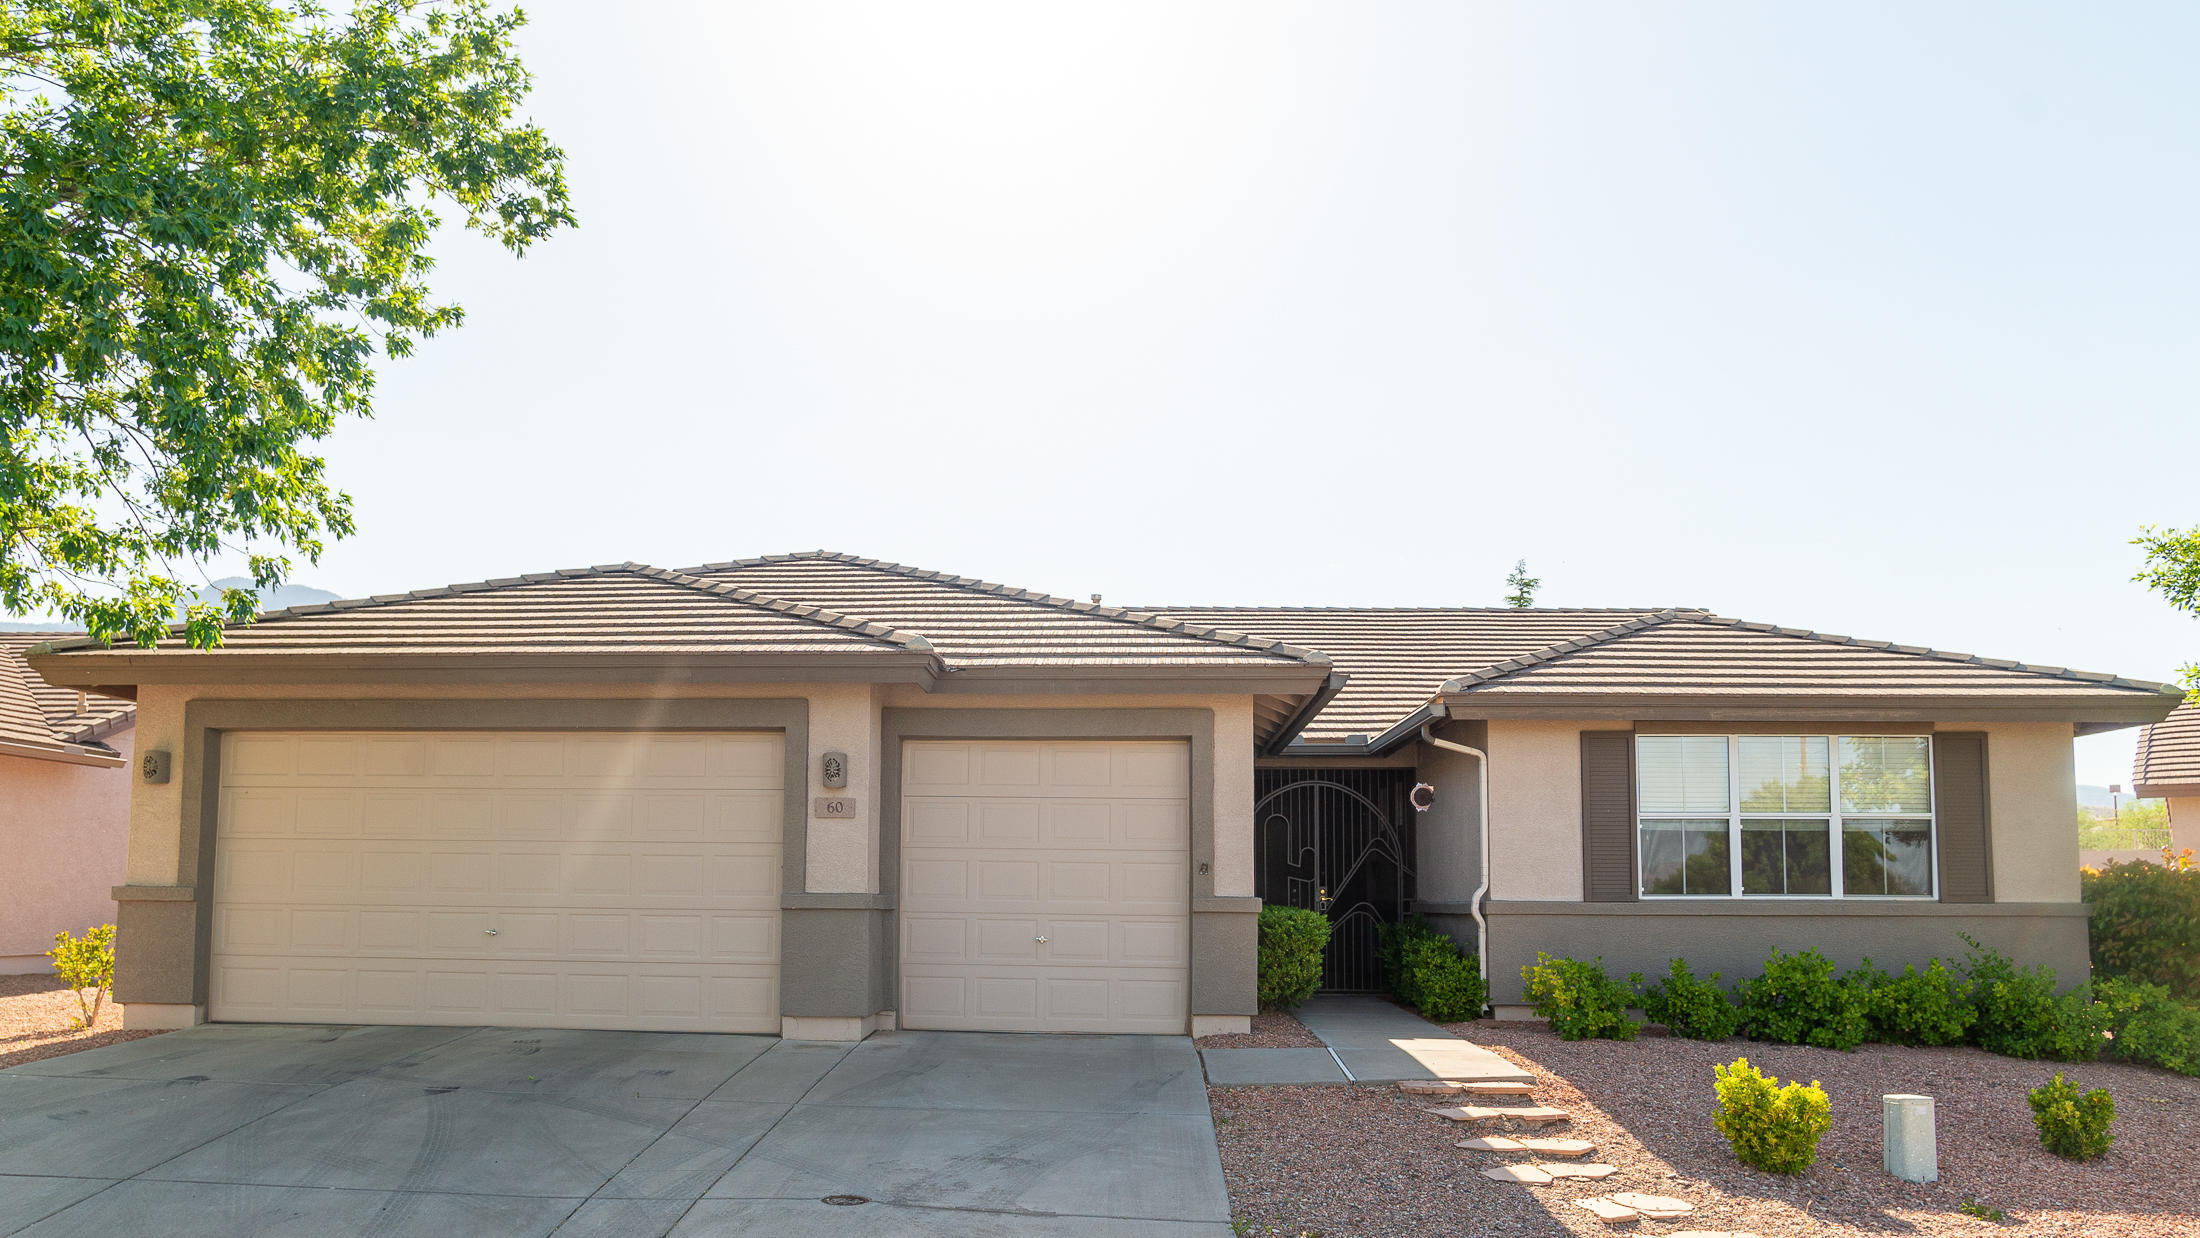 60 S Desperado Drive Cottonwood, AZ 86326